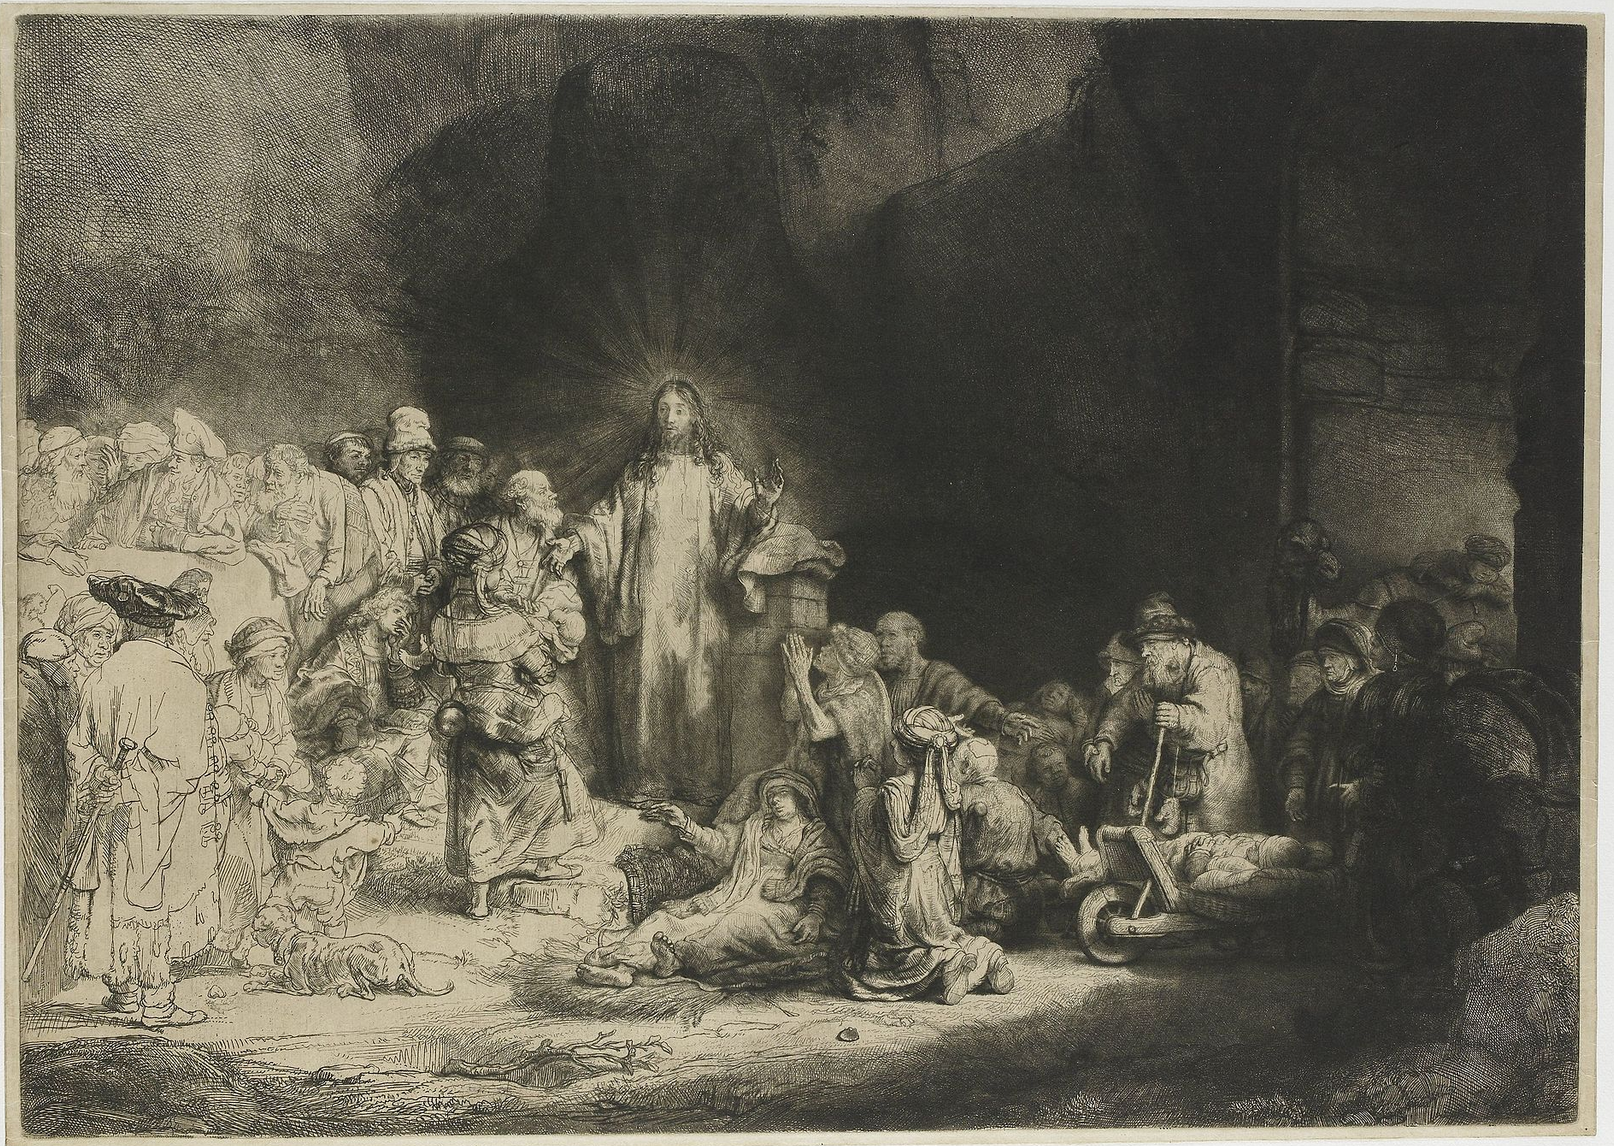 Rembrandt La Pièce aux cent florins Eau-forte, pointe sèche et burin 28,1x39,4cm, Rijksmuseum Amsterdam, National Gallery pf Art Washington, BNF, British Museum, MBA, Ottawa, The Frick Collection, Musée national of Art, Tokyo